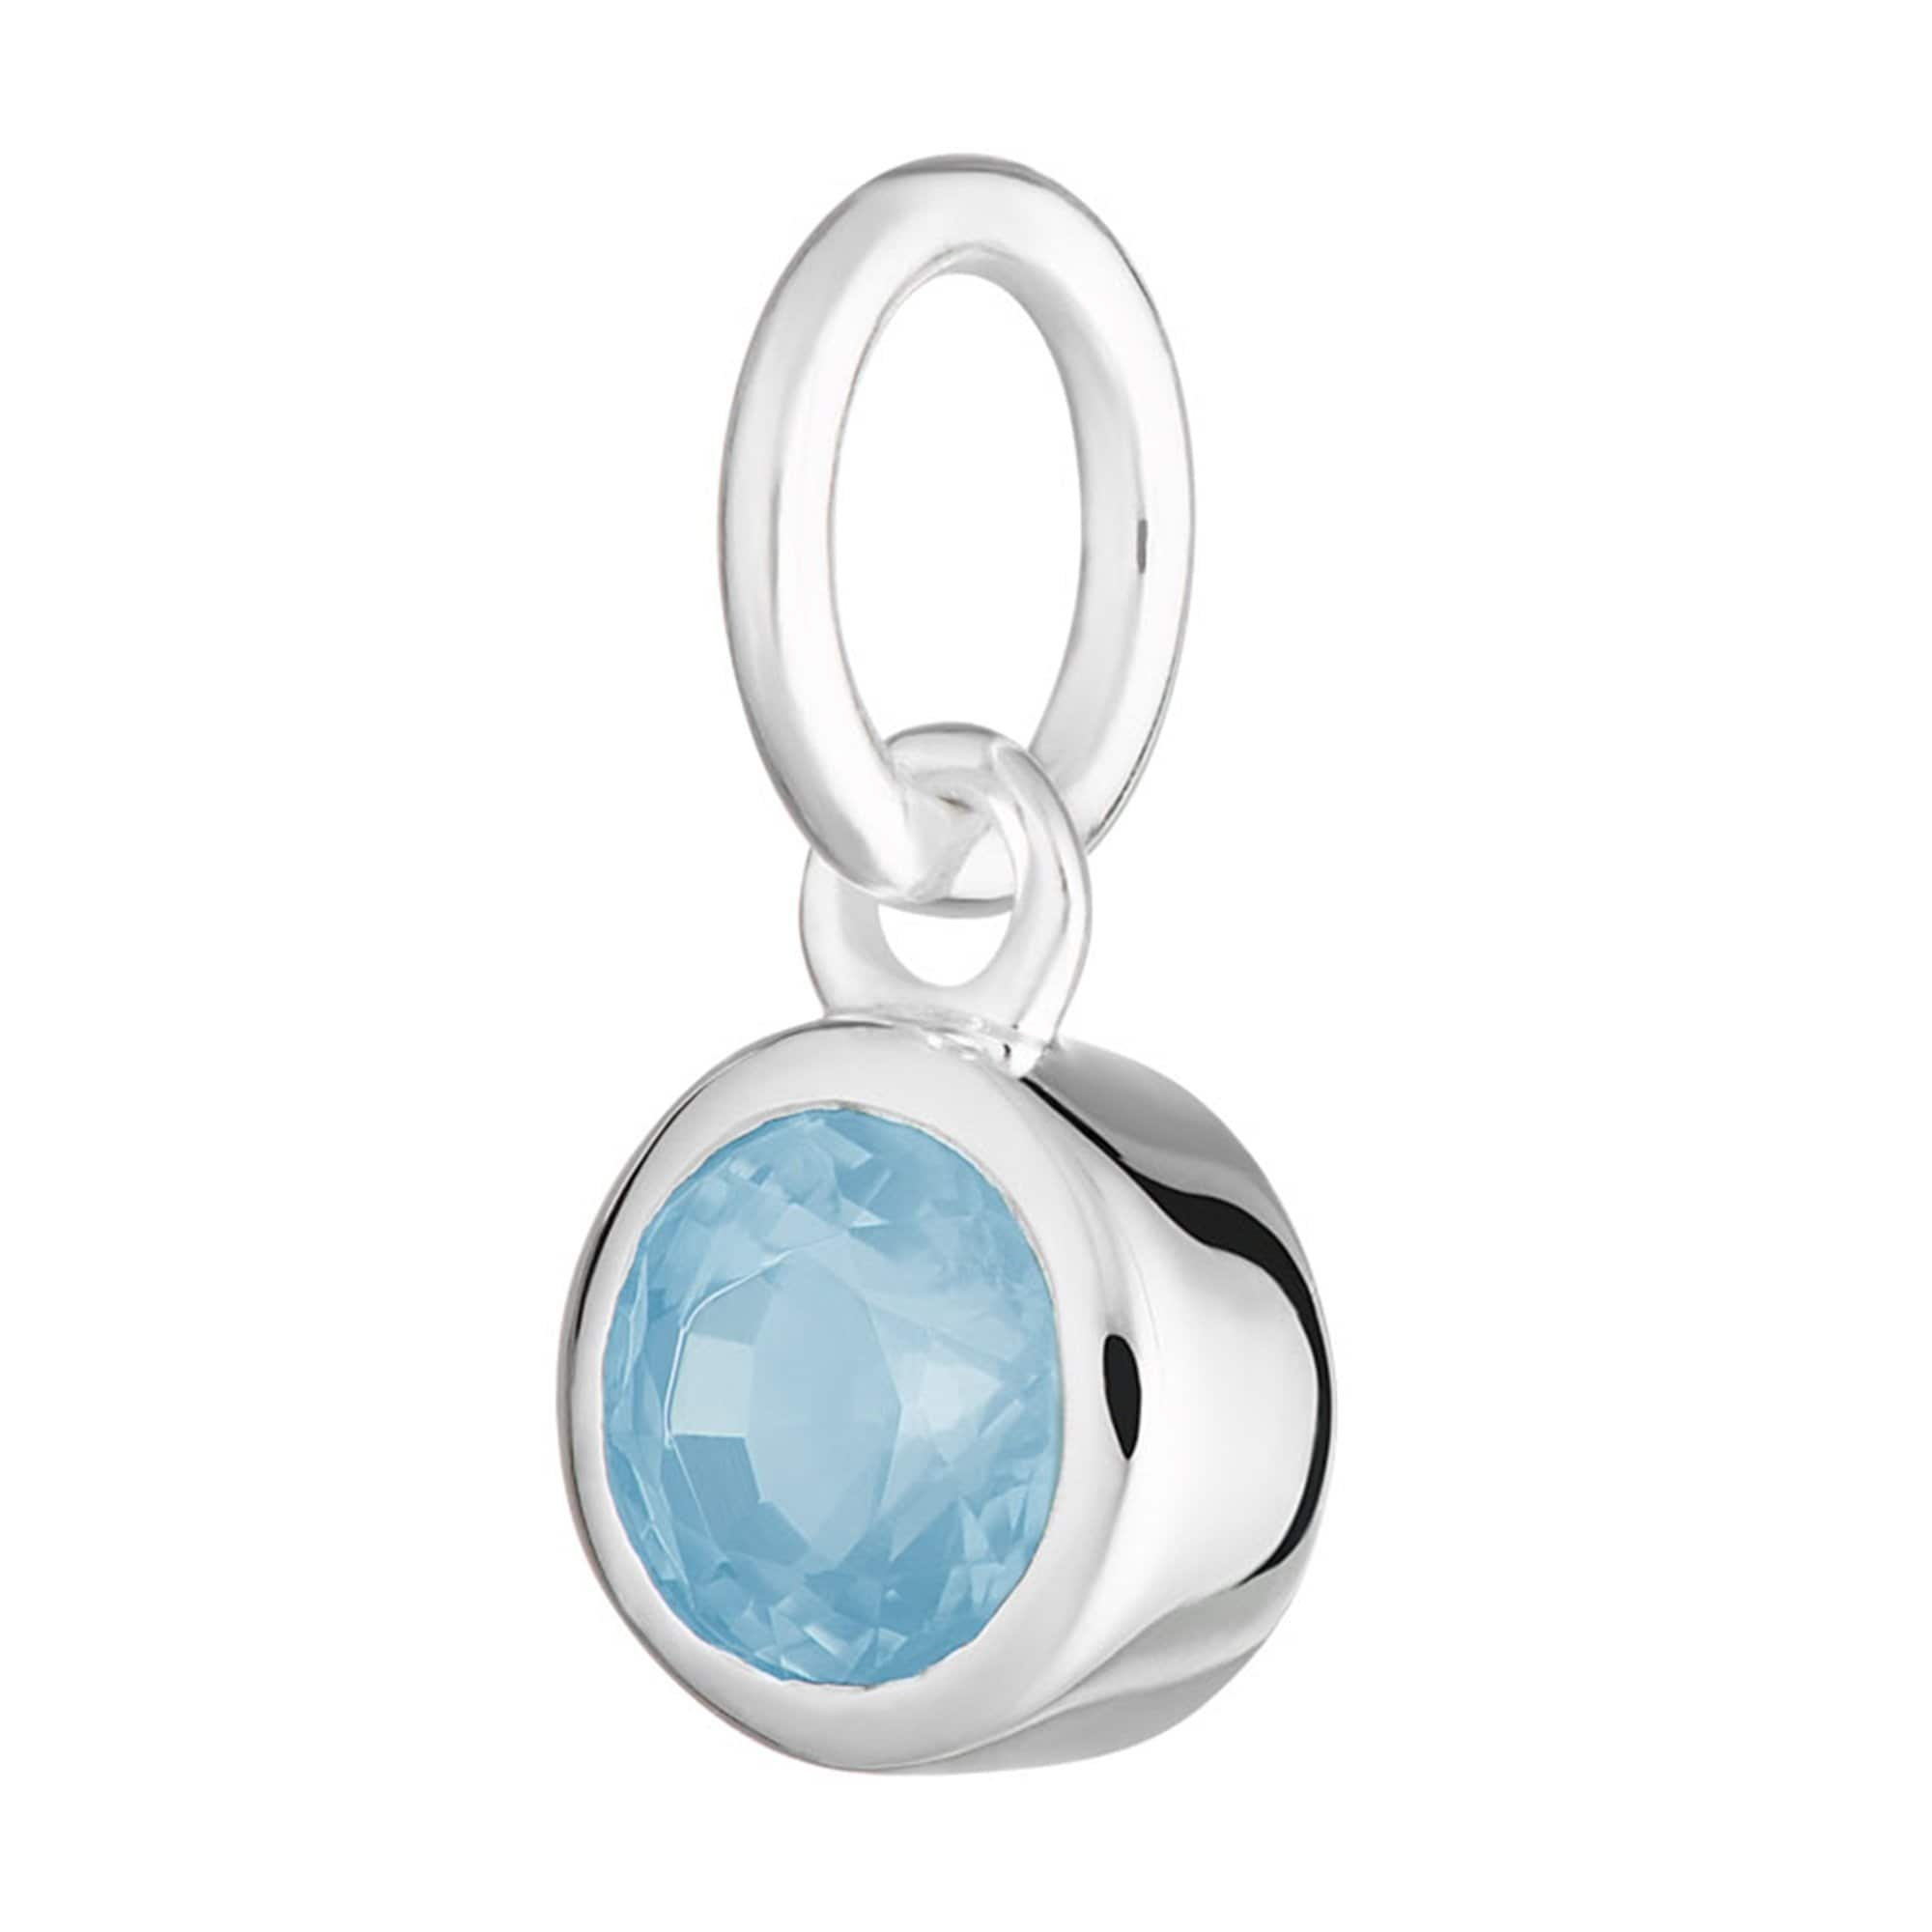 Blue Topaz Charm - December Birthstone - Lily Charmed